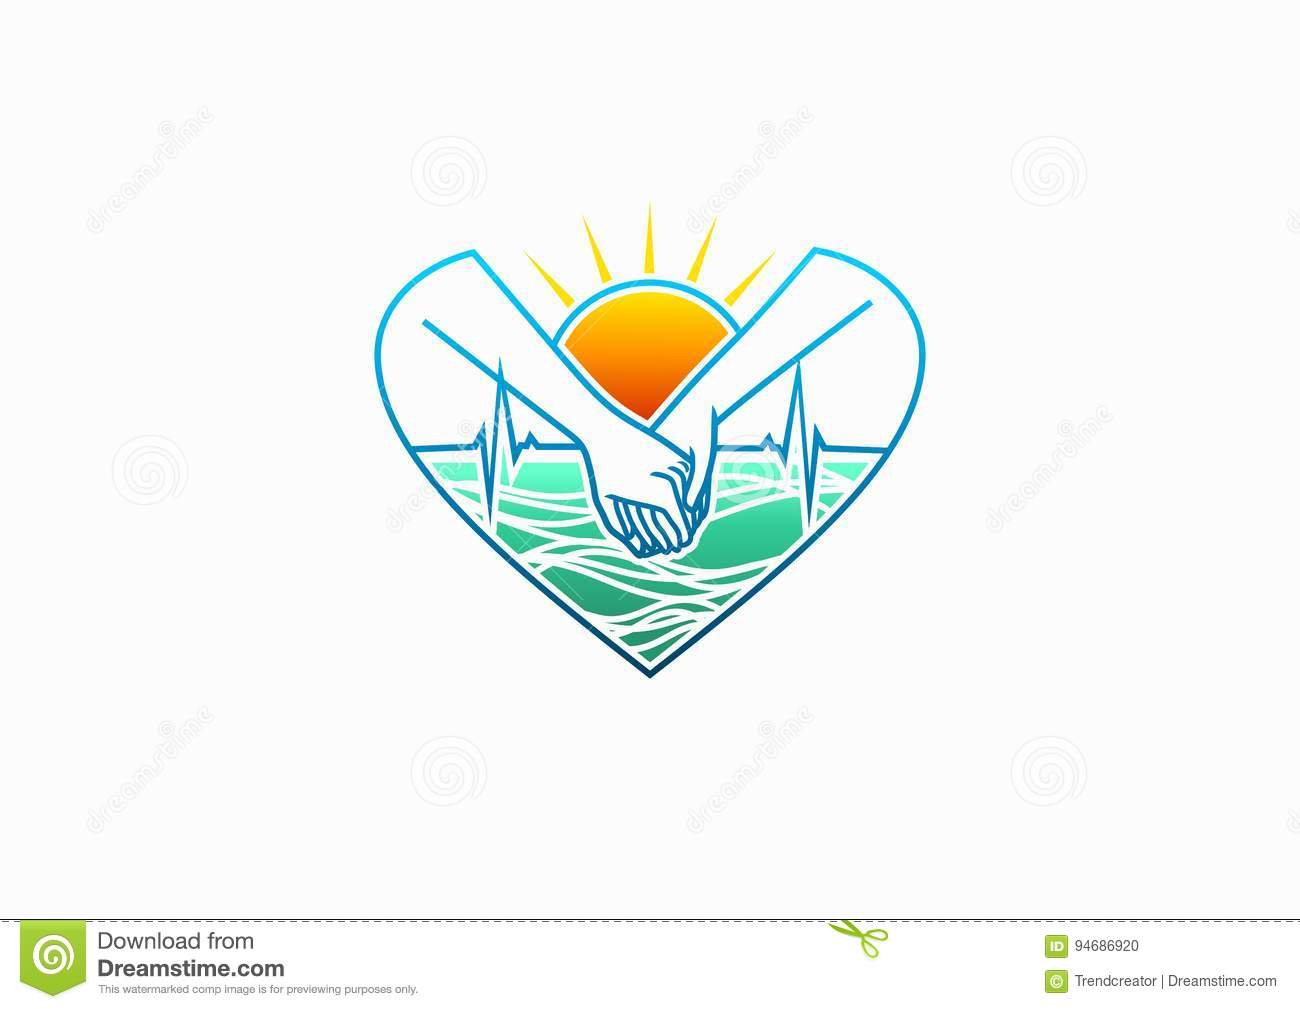 Healthy Heart Logo Cardiologist Icon Natural Care Love Symbol Hearbeat Care Medical Surgeon And Healthy Life Concept Design Stock Vector Illustration Of Heart Family 94686920